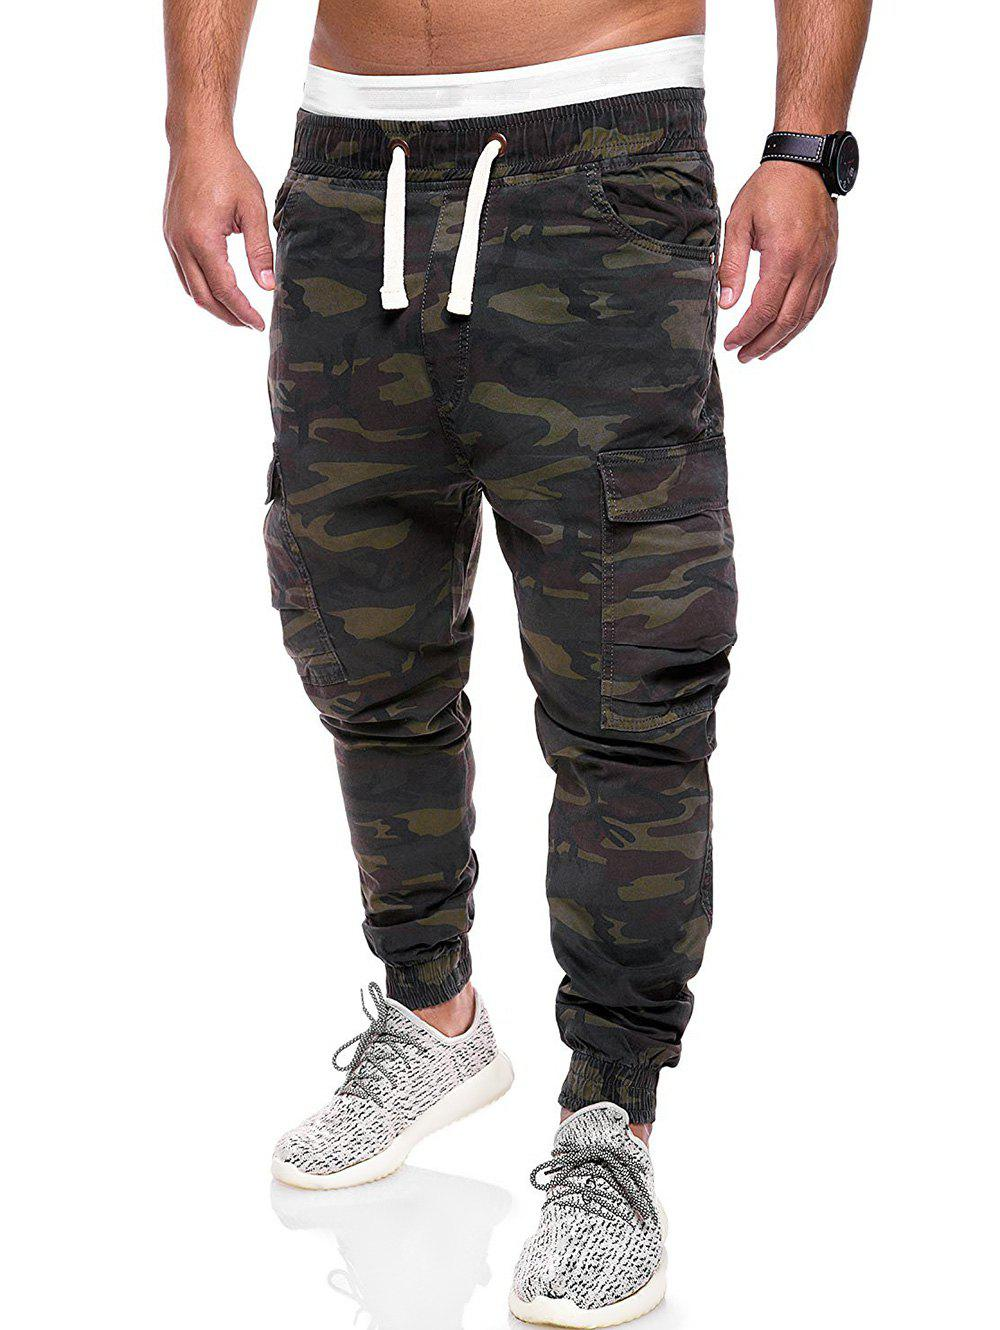 Camouflage Print Multi Pockets Cargo Jogger Pants, Dark forest green